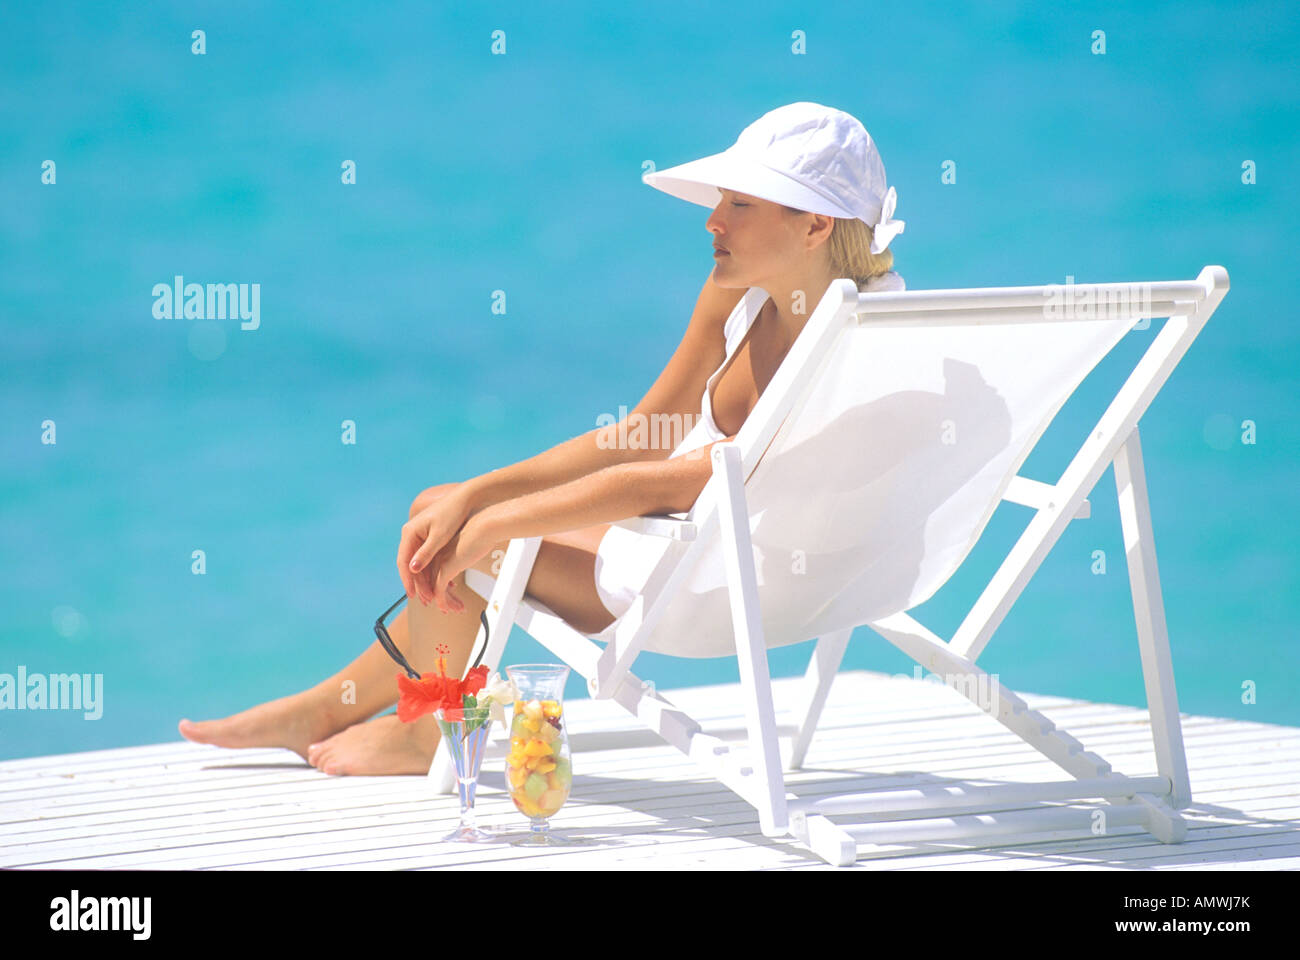 Stupendous Usa Hawaiian Islands Woman In Beach Chair Lounging On Ocoug Best Dining Table And Chair Ideas Images Ocougorg